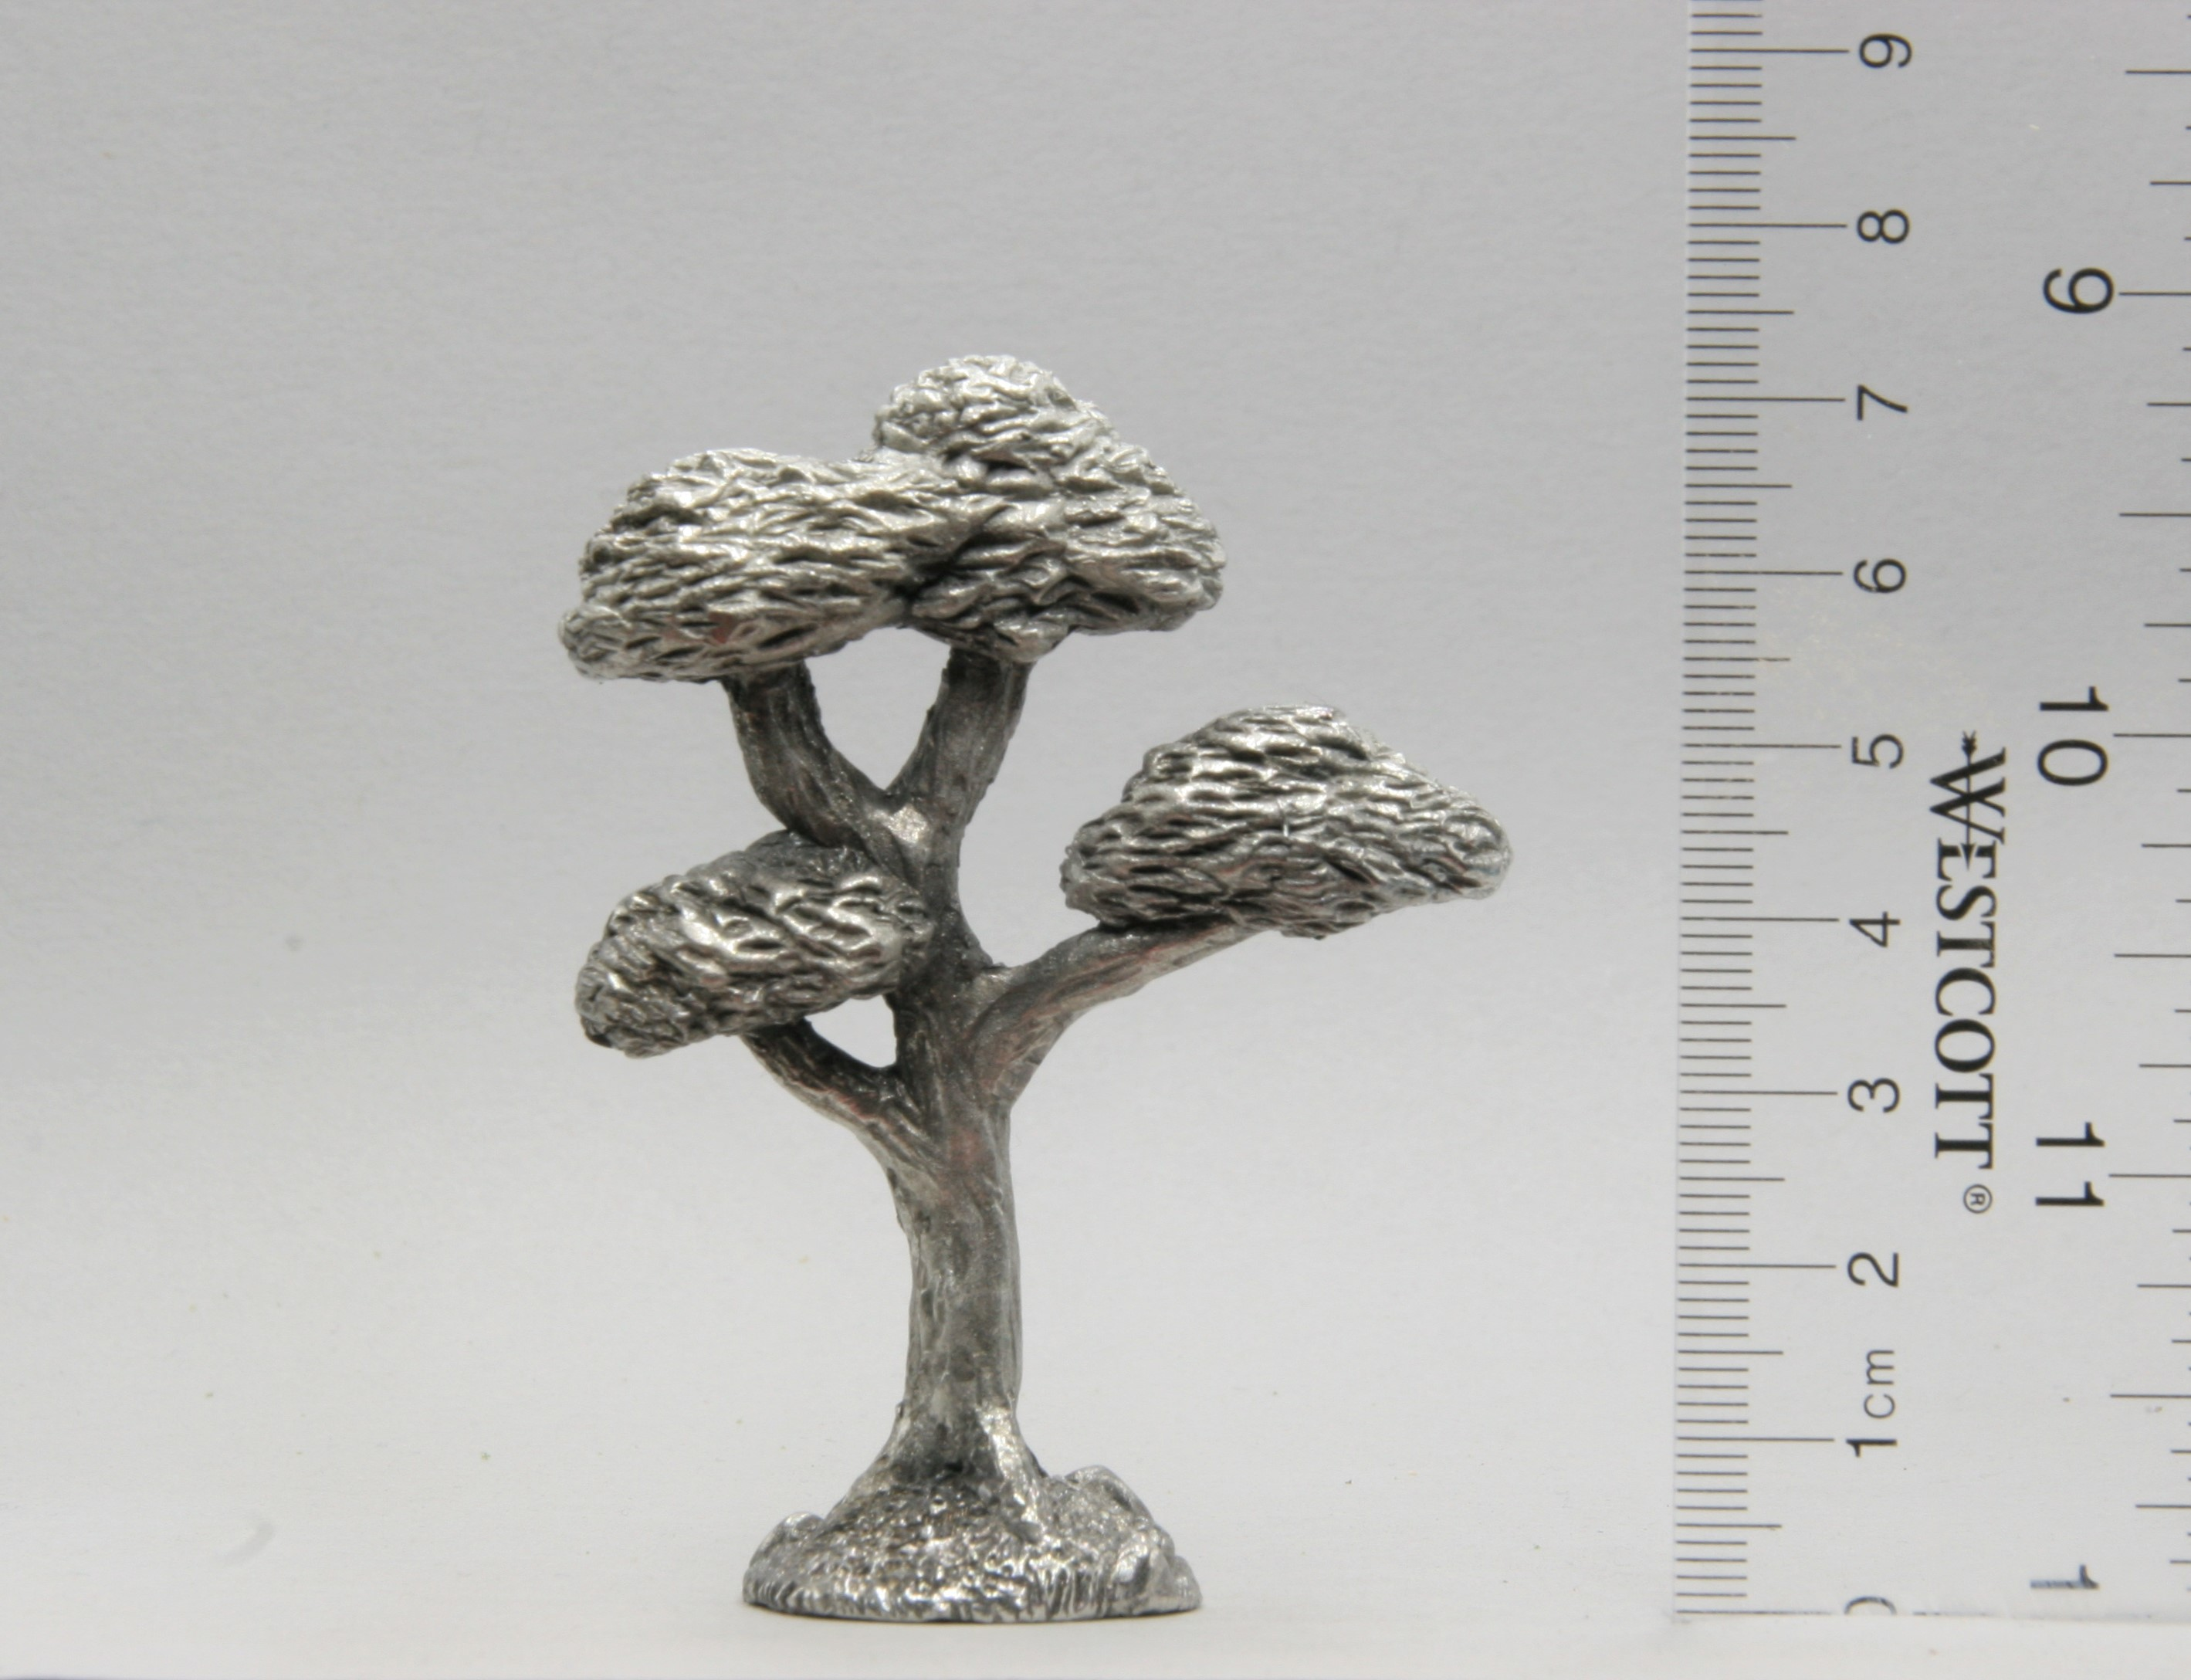 Tall Tree pewter